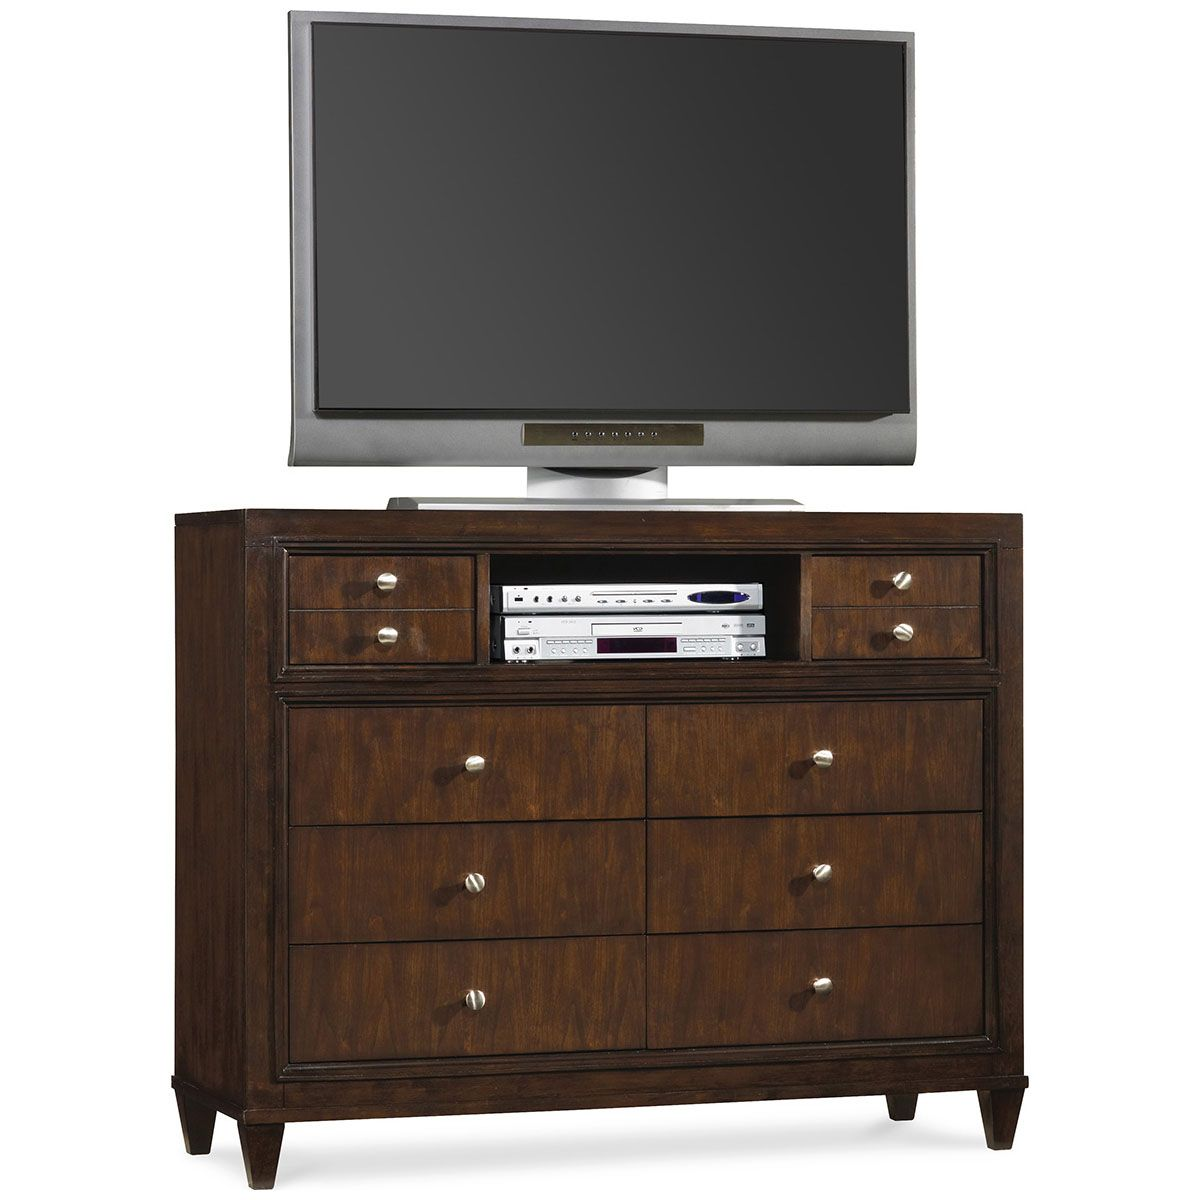 Hooker Furniture Ludlow Media Chest 1030-91117